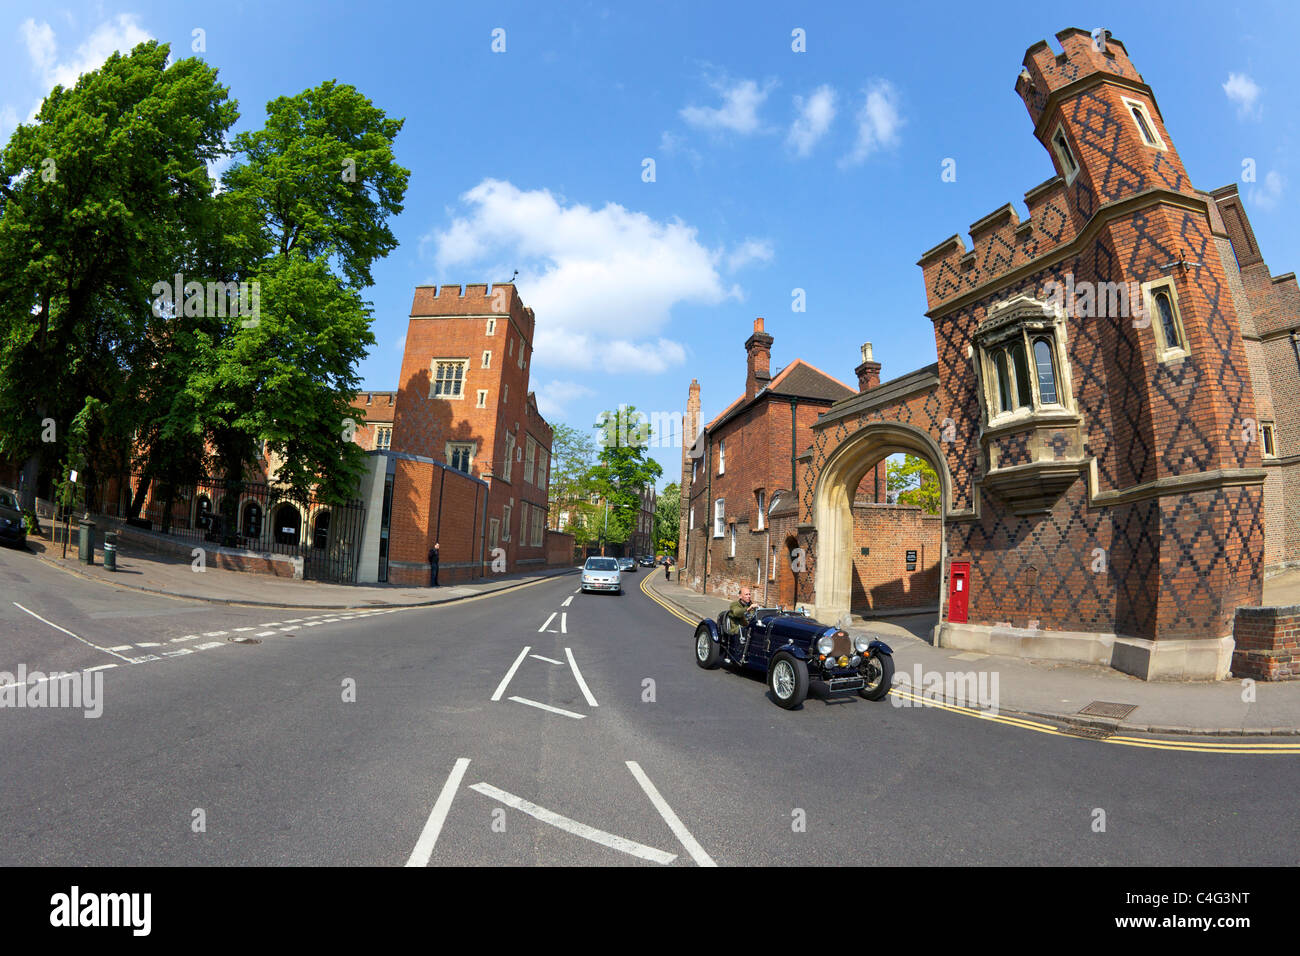 Eton College, Eton School, Berkshire, England, UK, United Kingdom, GB, Great Britain, British Isles, Europe - Stock Image